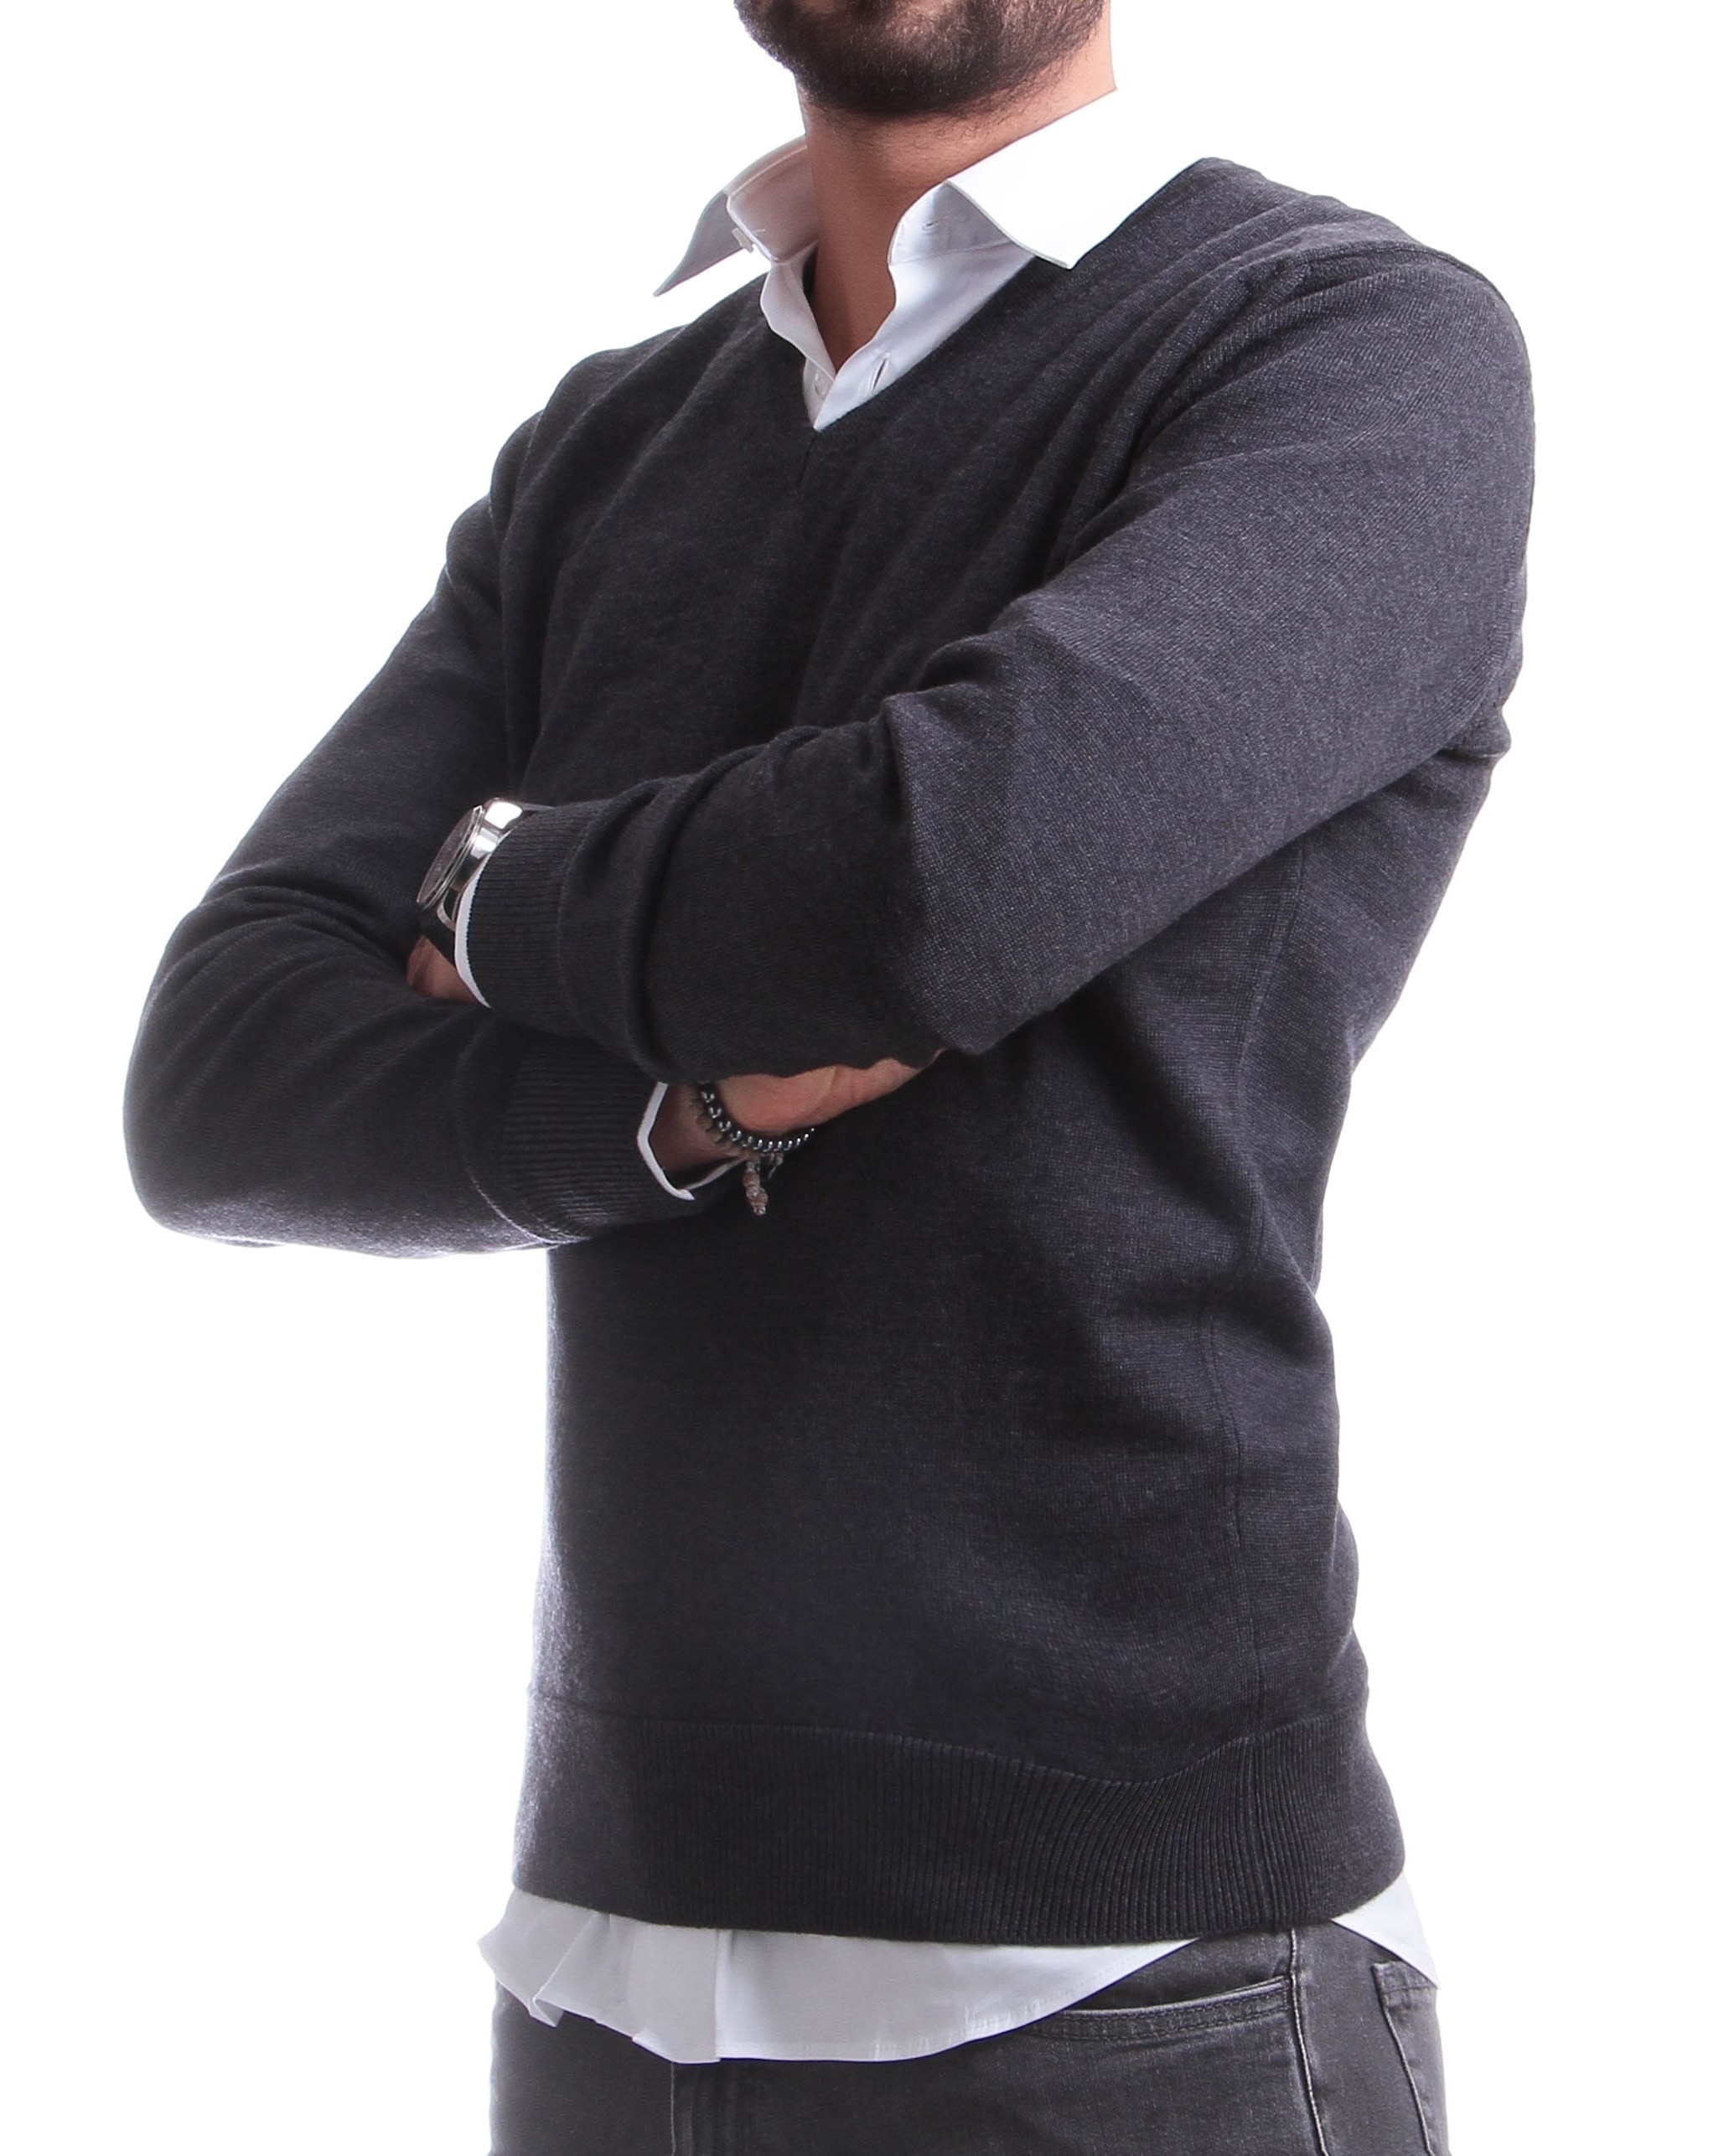 Pull Italy : Anthracite - Col en V - Pure laine mérinos